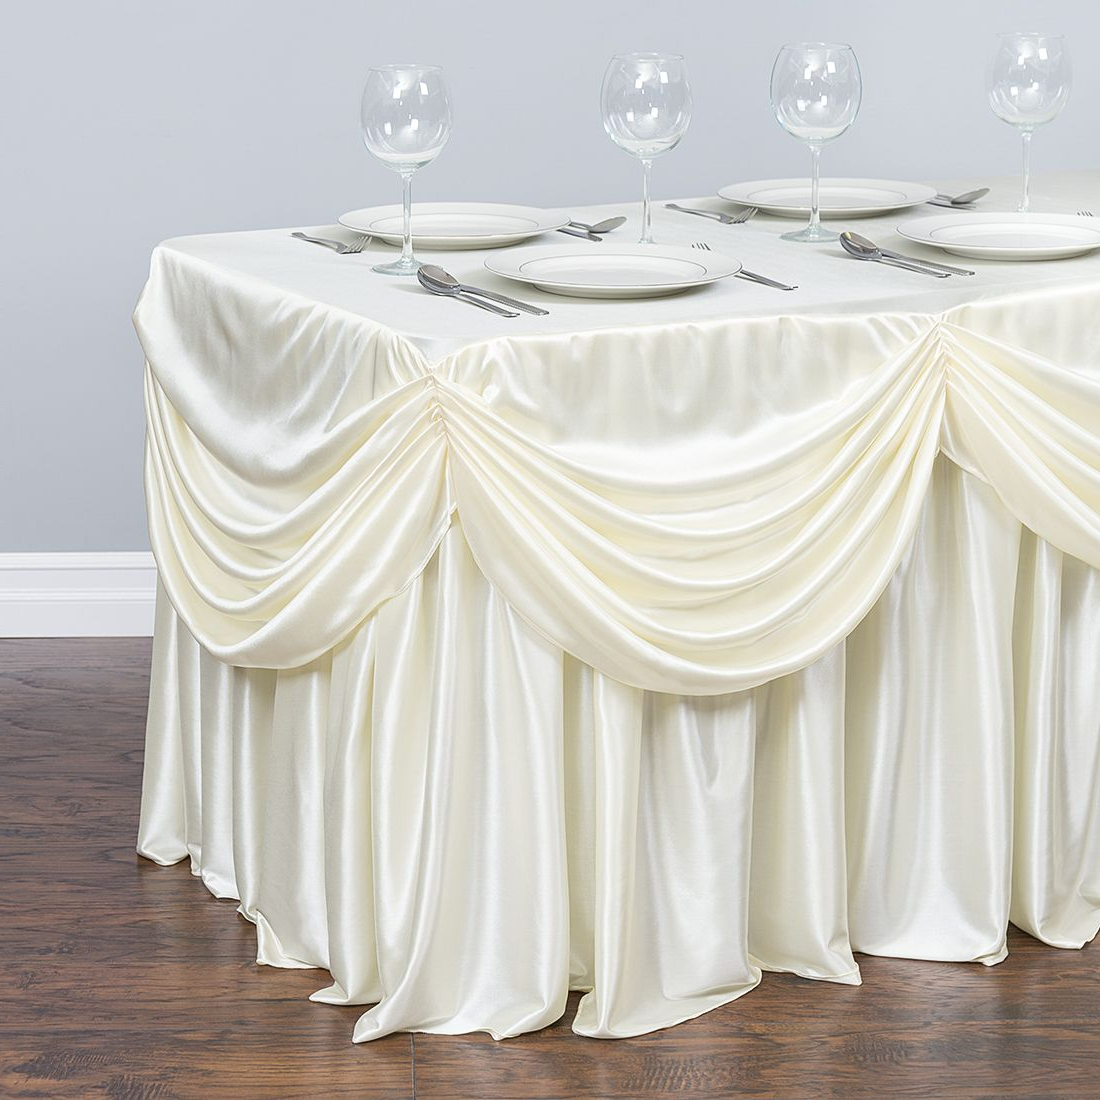 Table Cloth Jxdu 6 Ft Drape Chiffon All In 1 Tablecloth Pleated Skirt Ivory